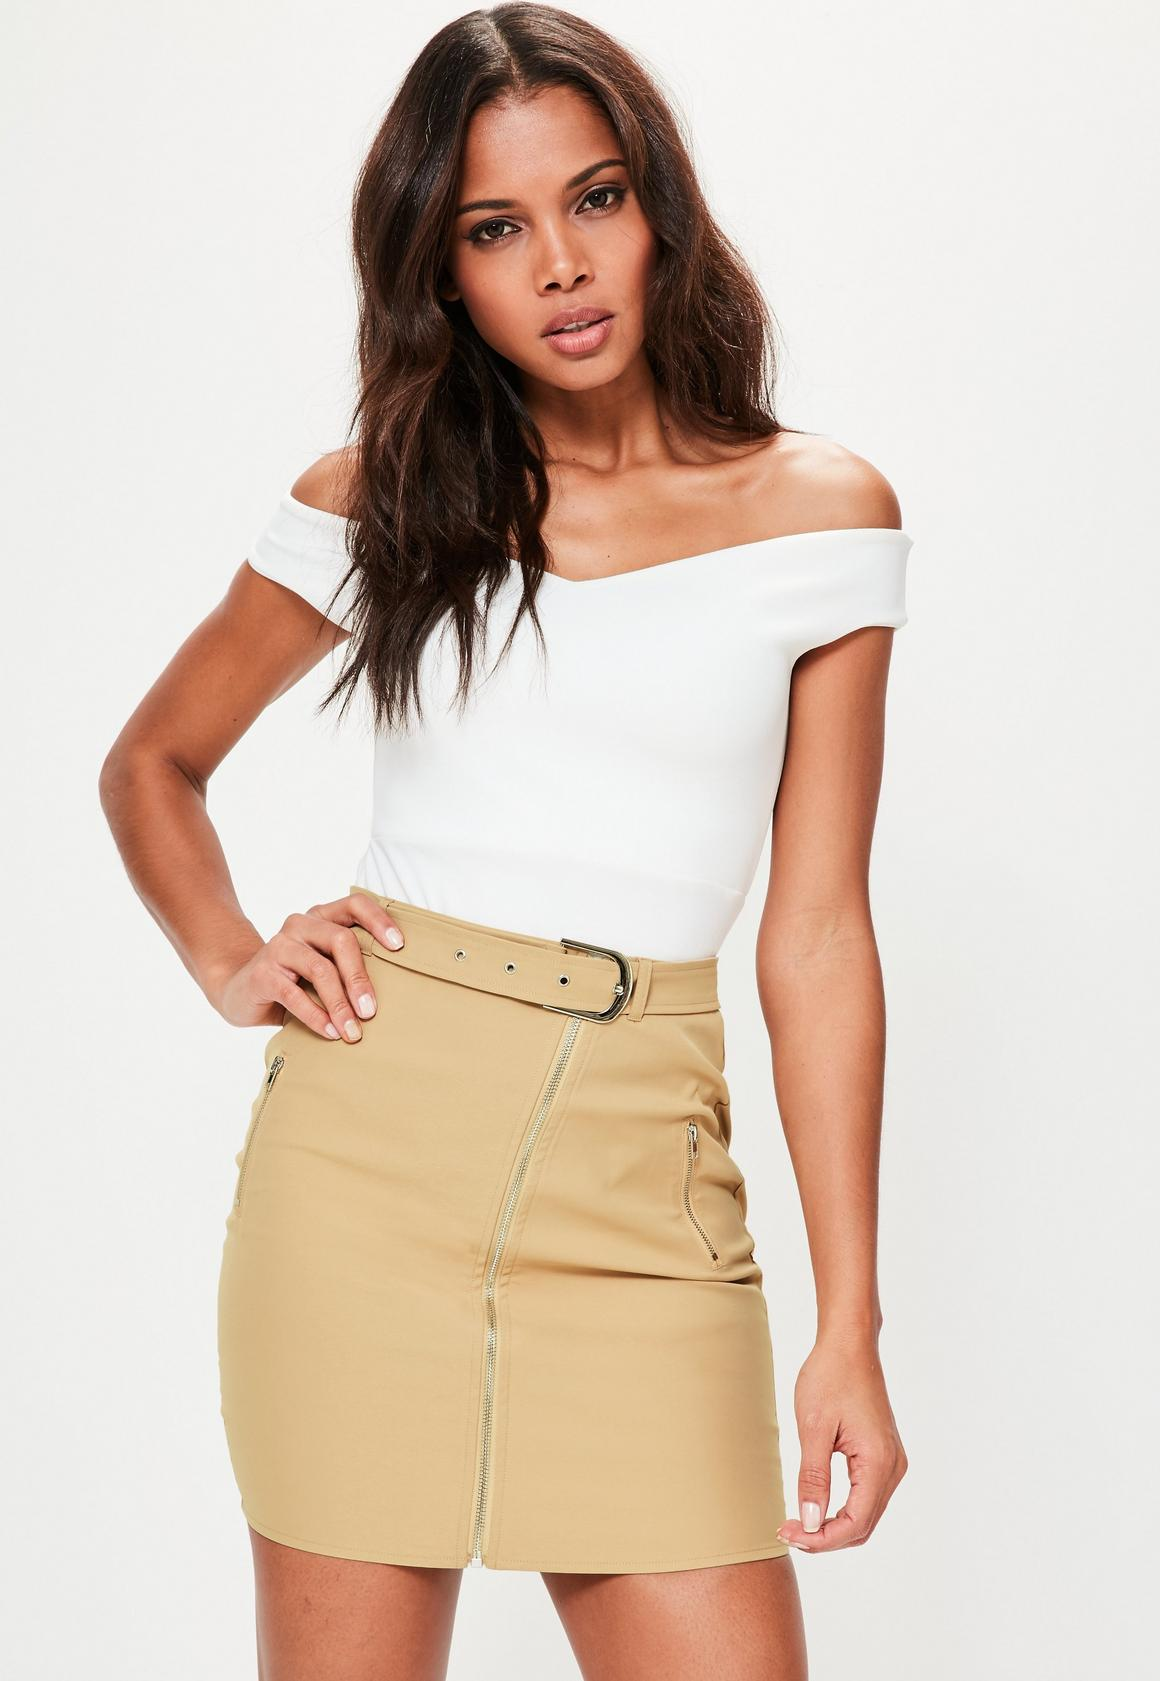 Collection Tan Mini Skirt Pictures - Watch Out, There's a Clothes ...